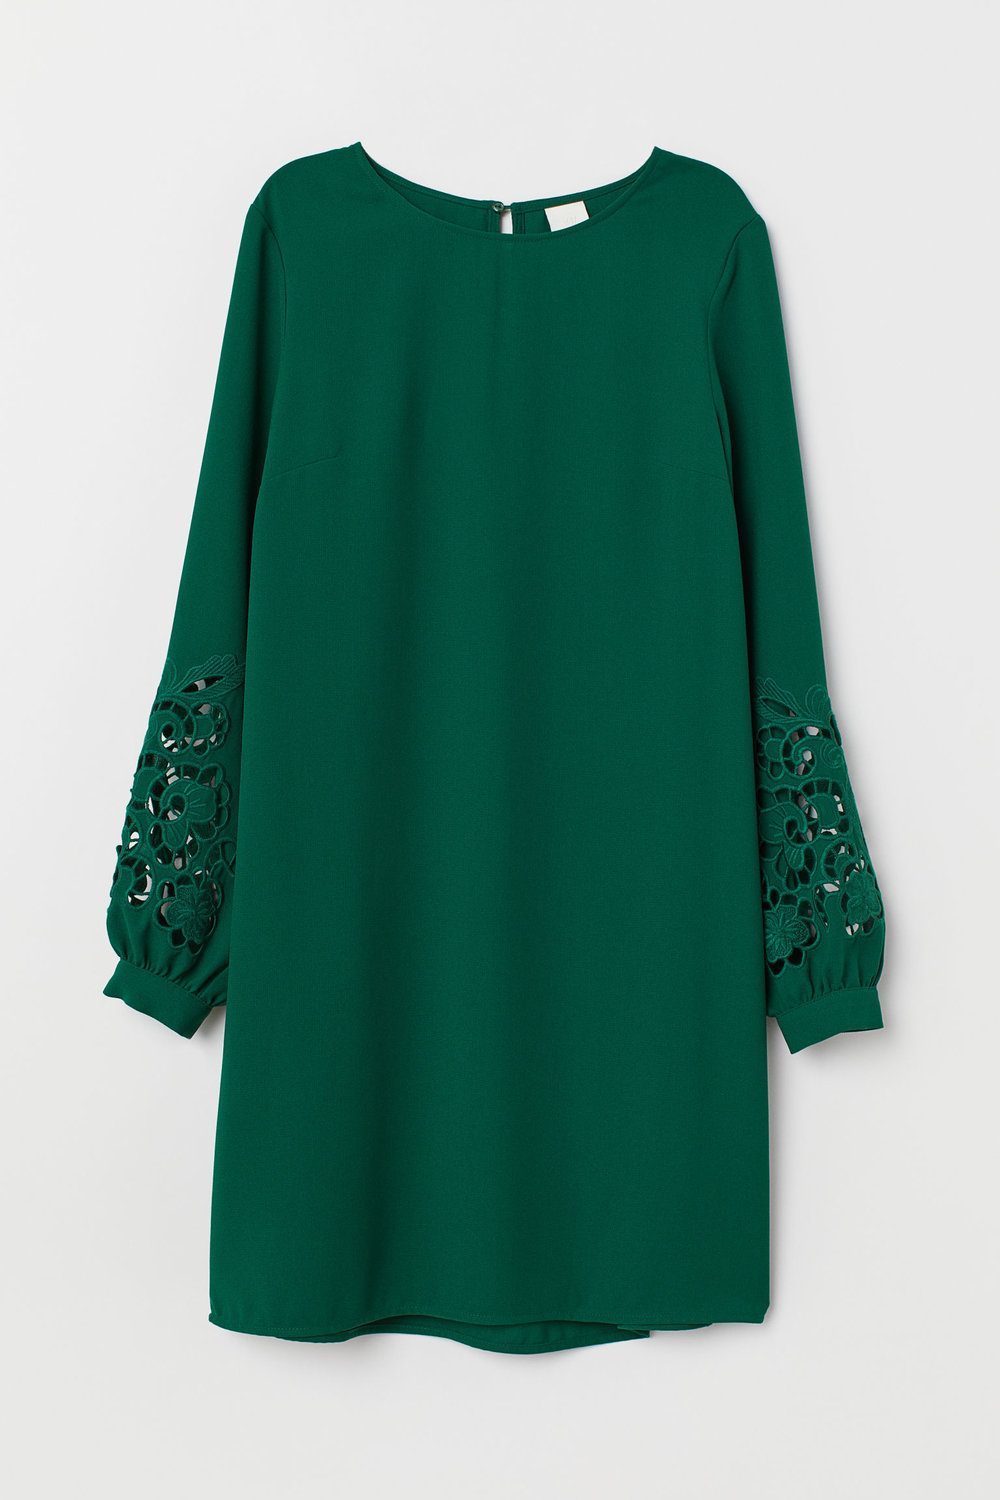 H&M: Lace-Sleeved Short Dress